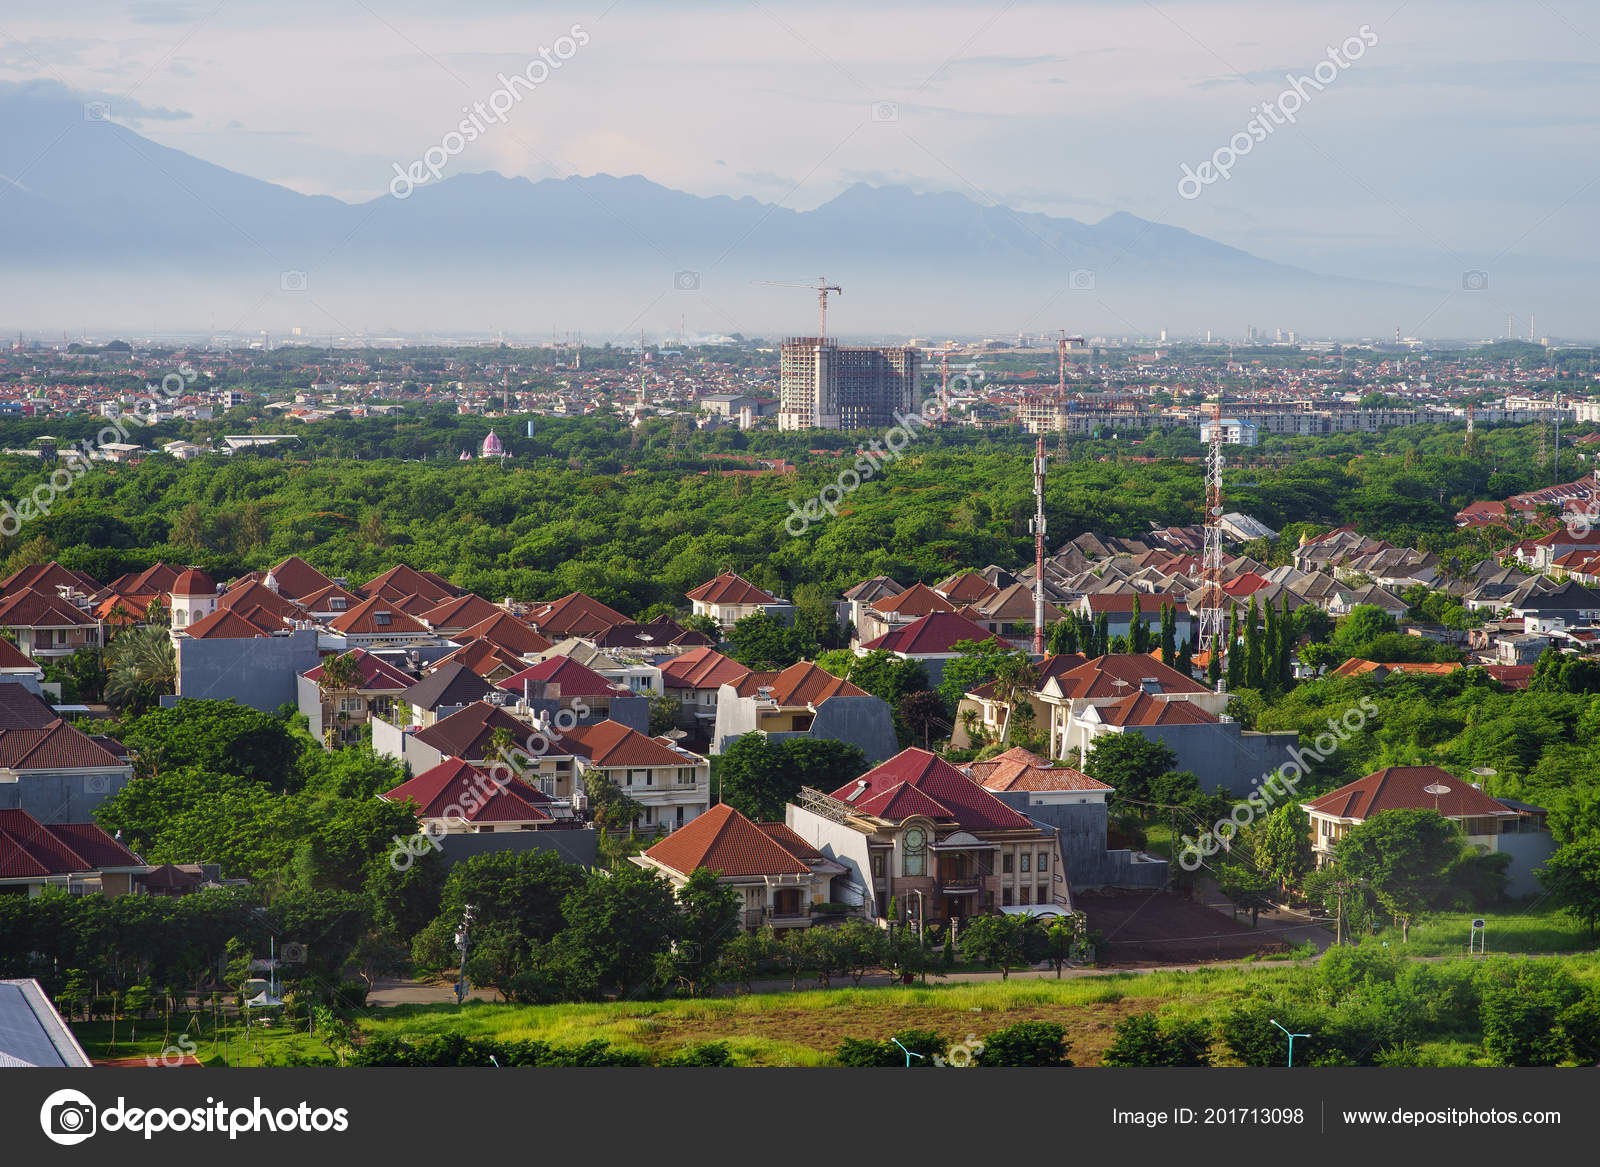 bird view city sun rise surabaya mount background indonesia stock photo c butoc 89 mail ru 201713098 https depositphotos com 201713098 stock photo bird view city sun rise html